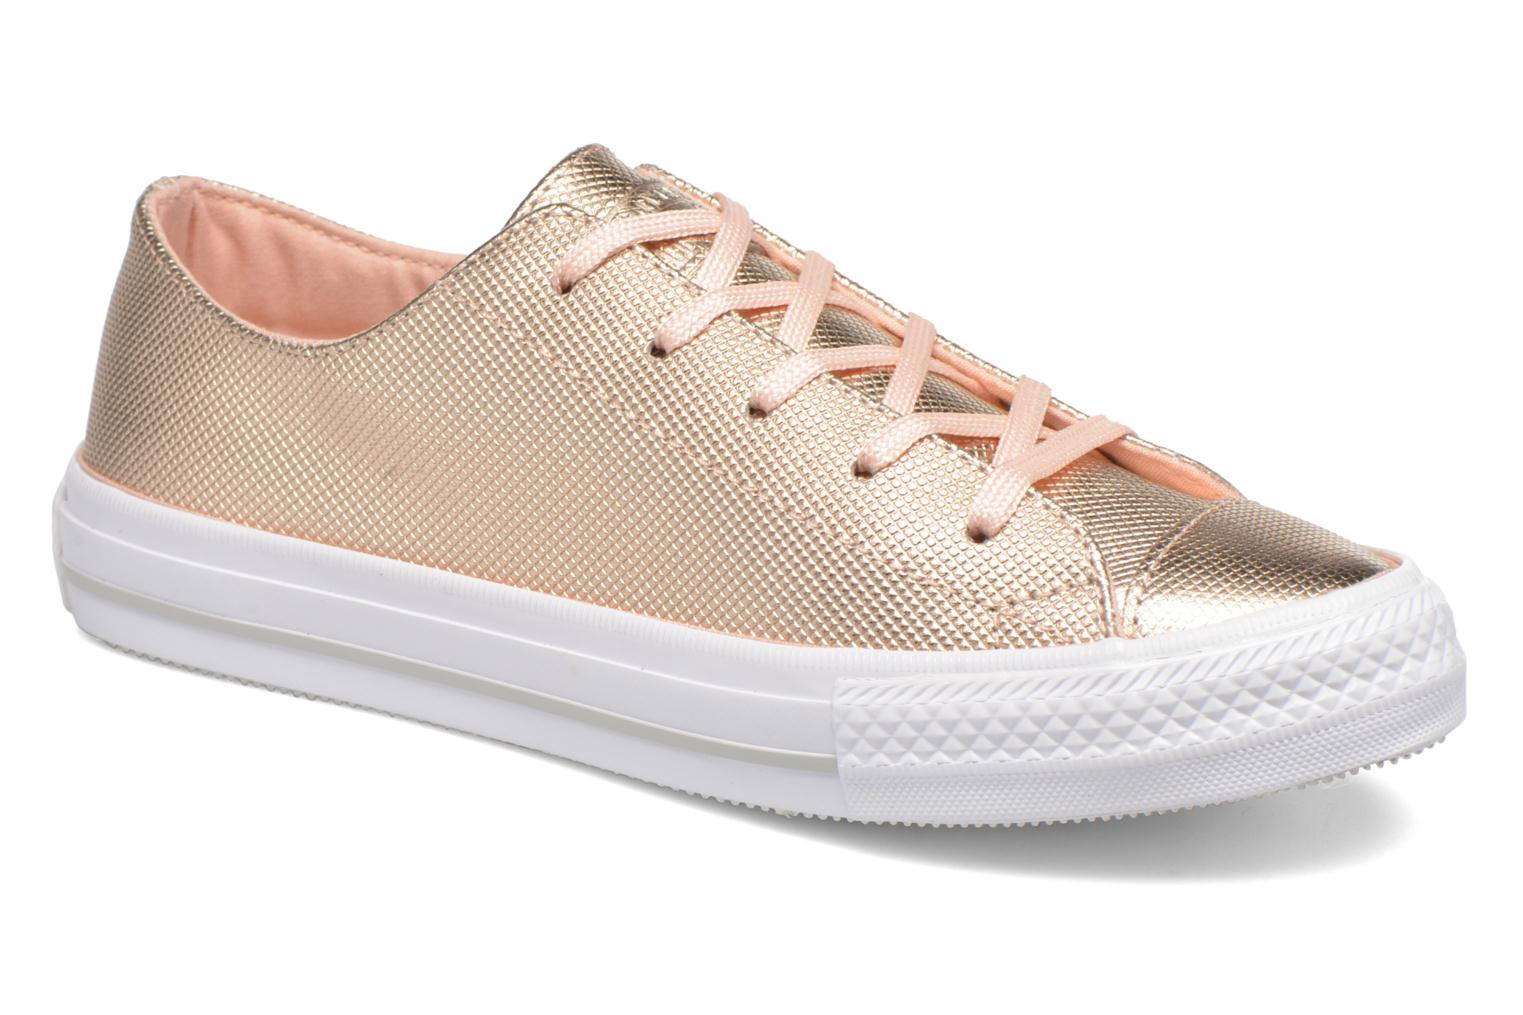 Baskets Converse Ctas Gemma Diamond Foil Leather Ox Rose vue détail/paire